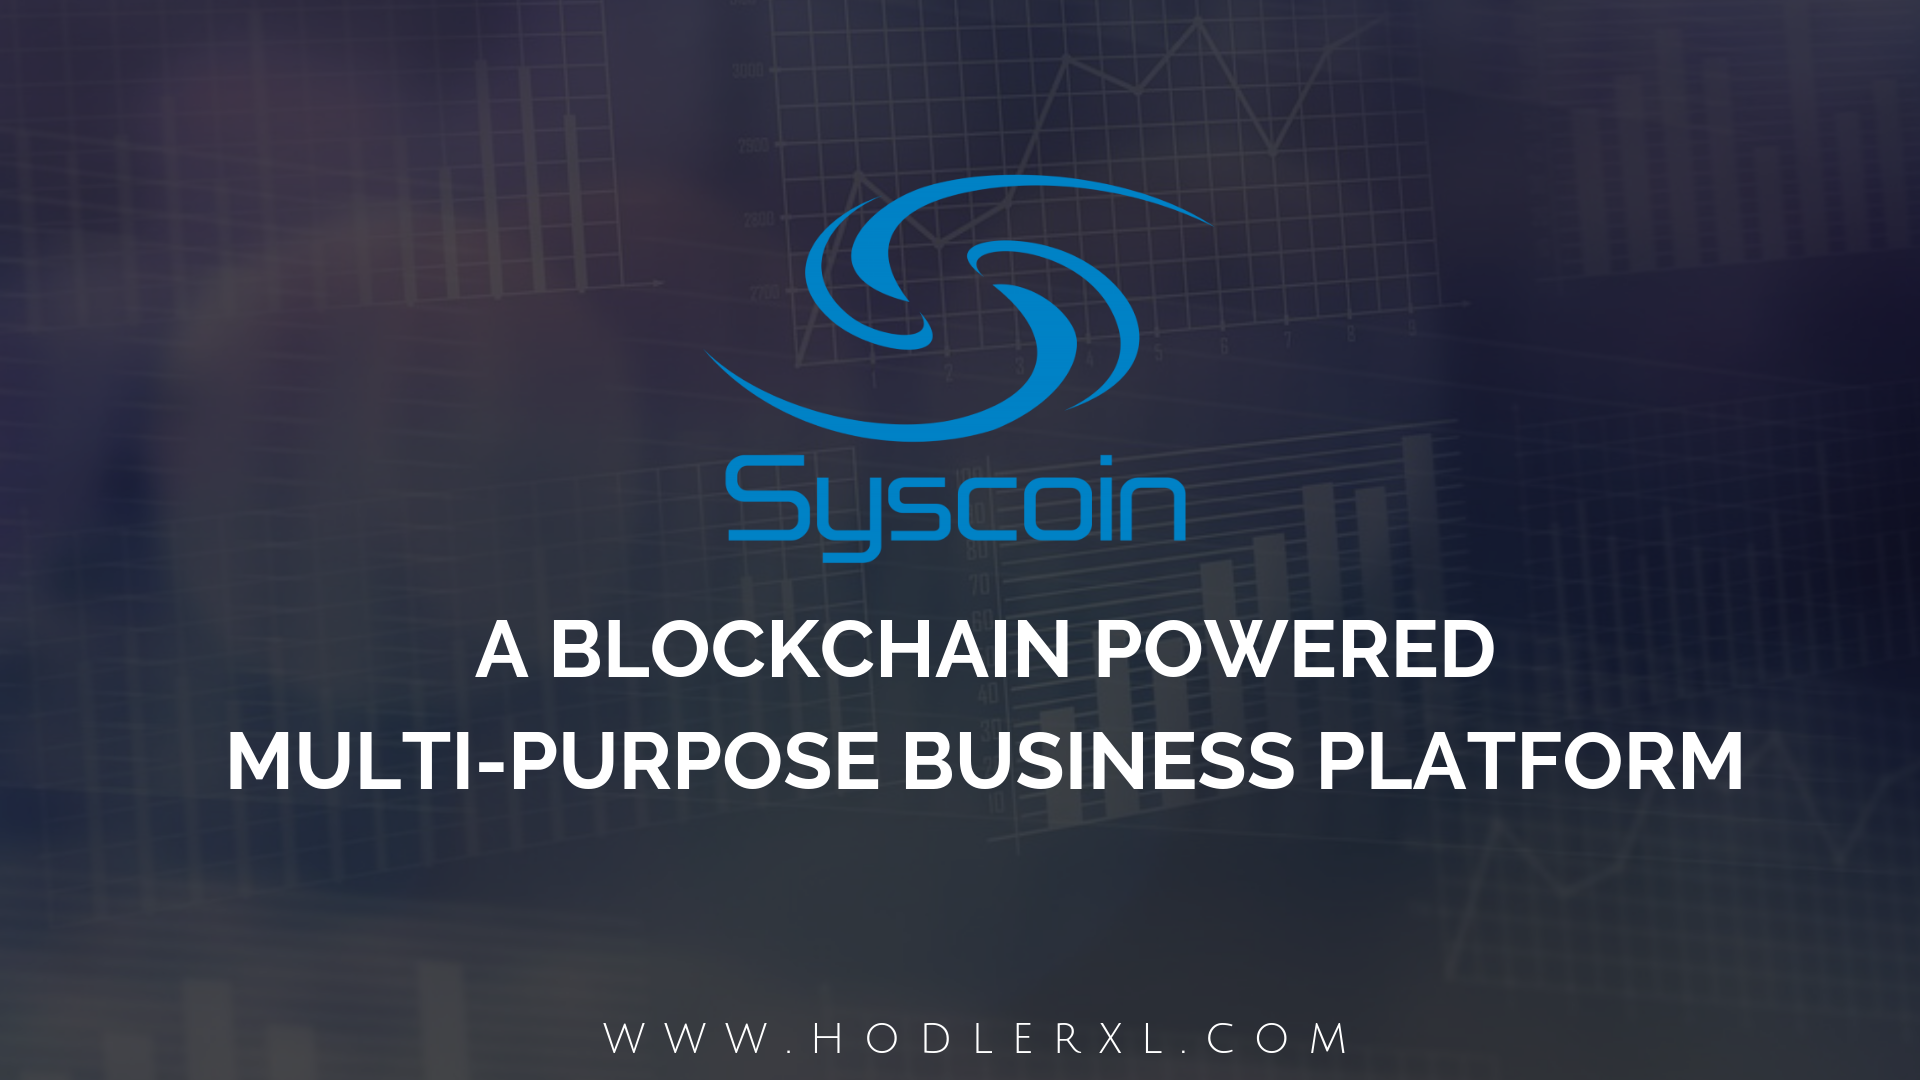 Syscoin A Blockchain Powered Multi-Purpose Business Platform